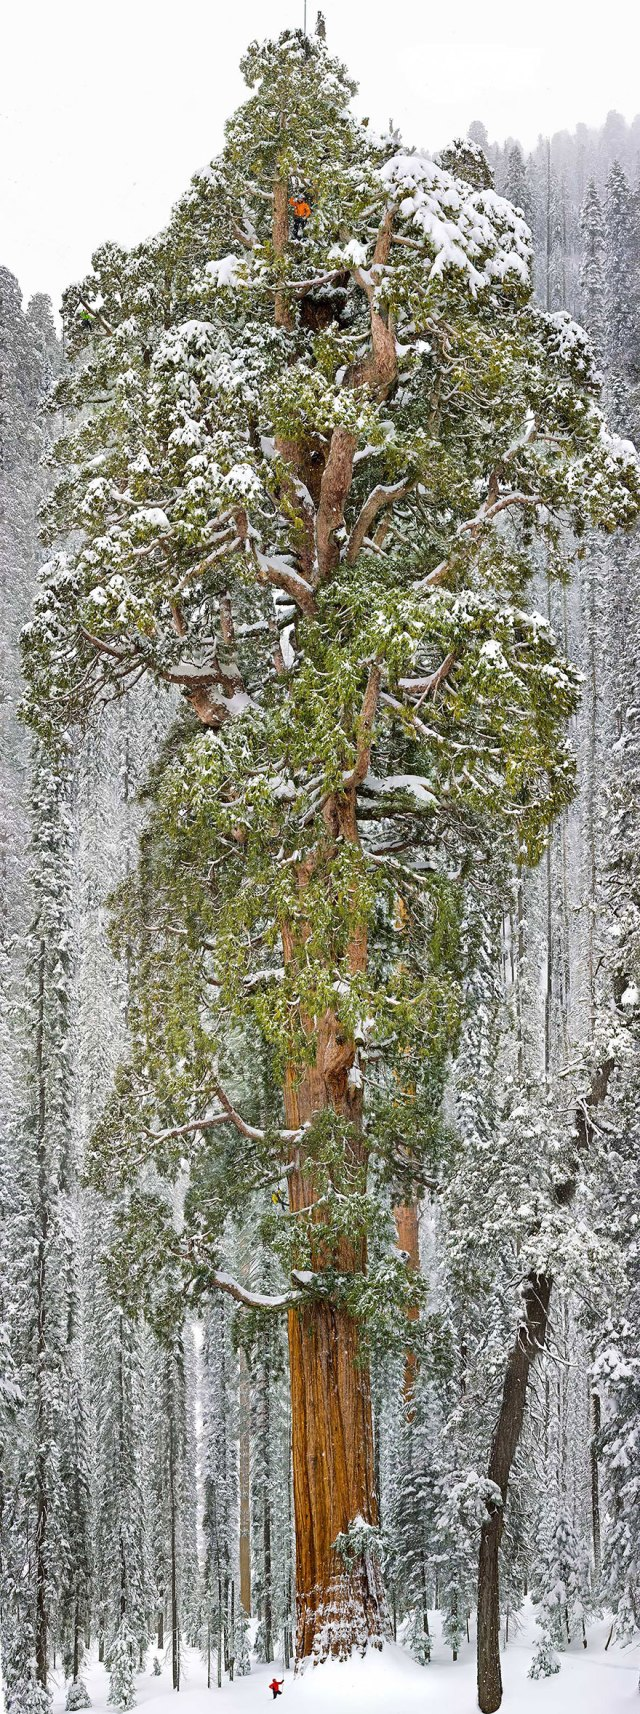 The President, Third-Largest Giant Sequoia Tree